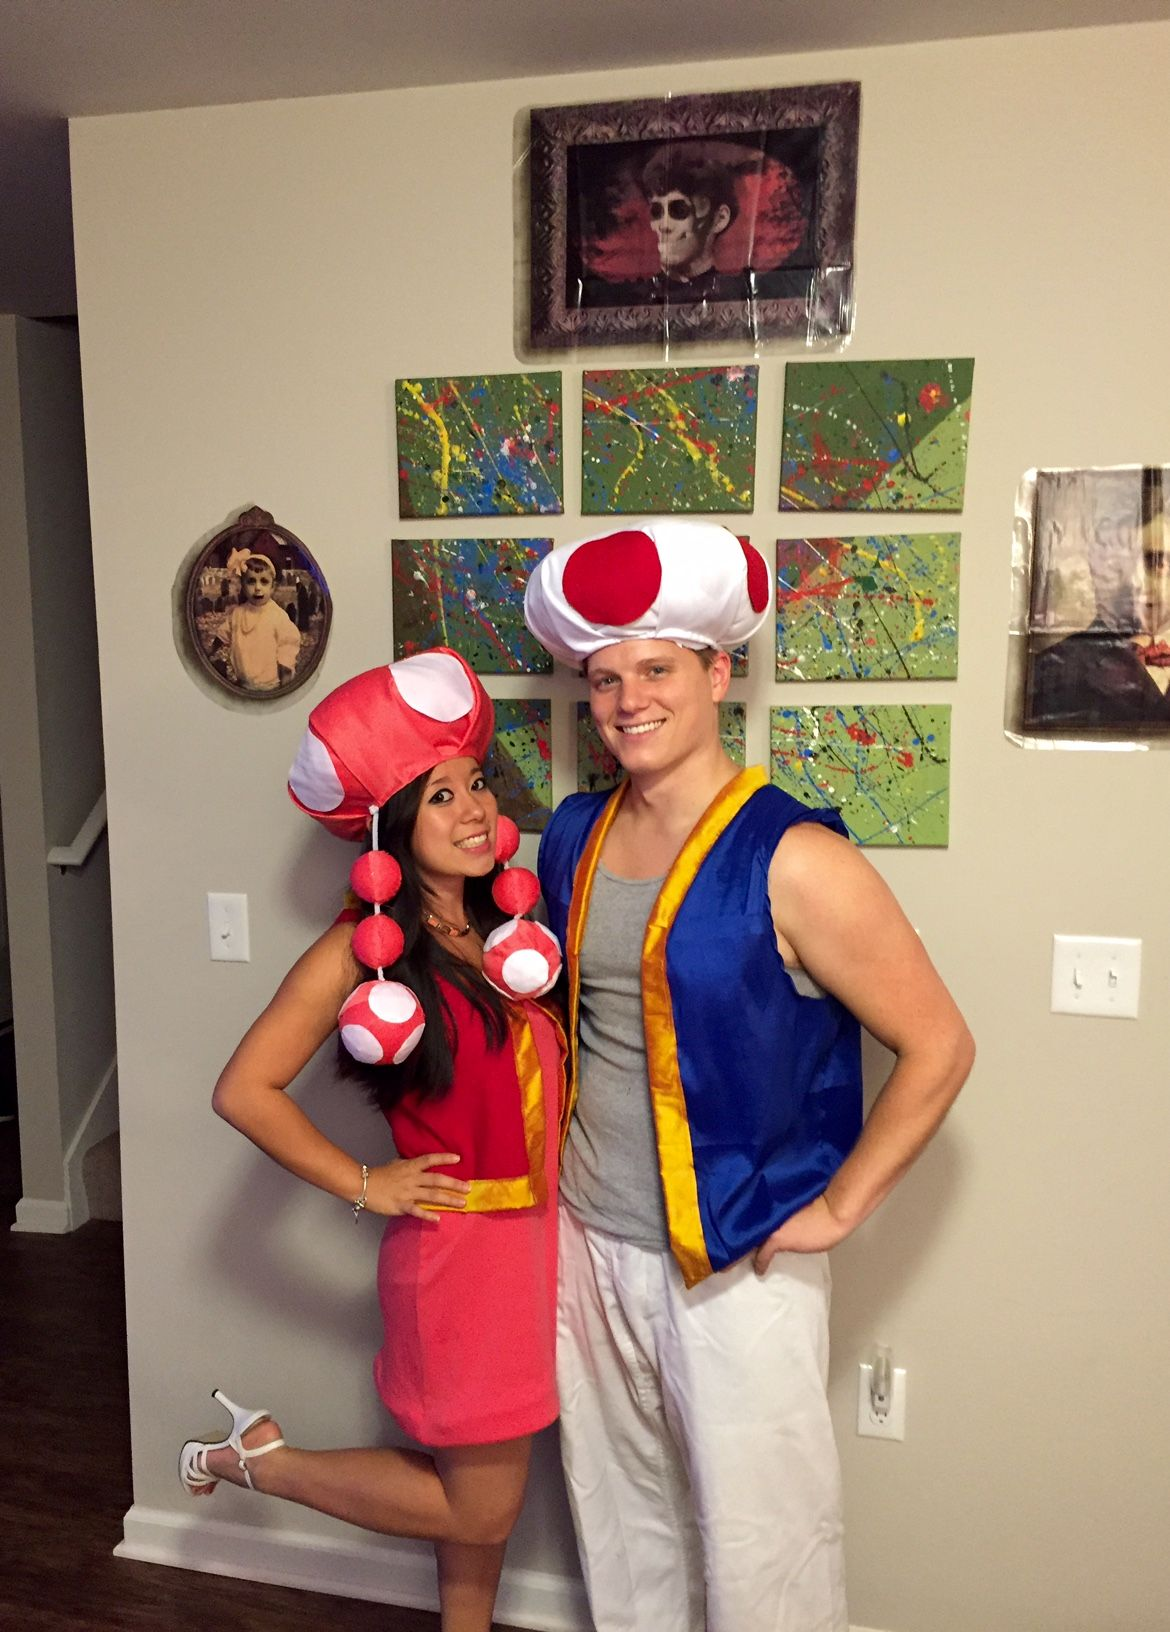 Super Mario Bros Toad and Toadette coupleu0027s costume  sc 1 st  Pinterest & Super Mario Bros Toad and Toadette coupleu0027s costume | DIY Halloween ...